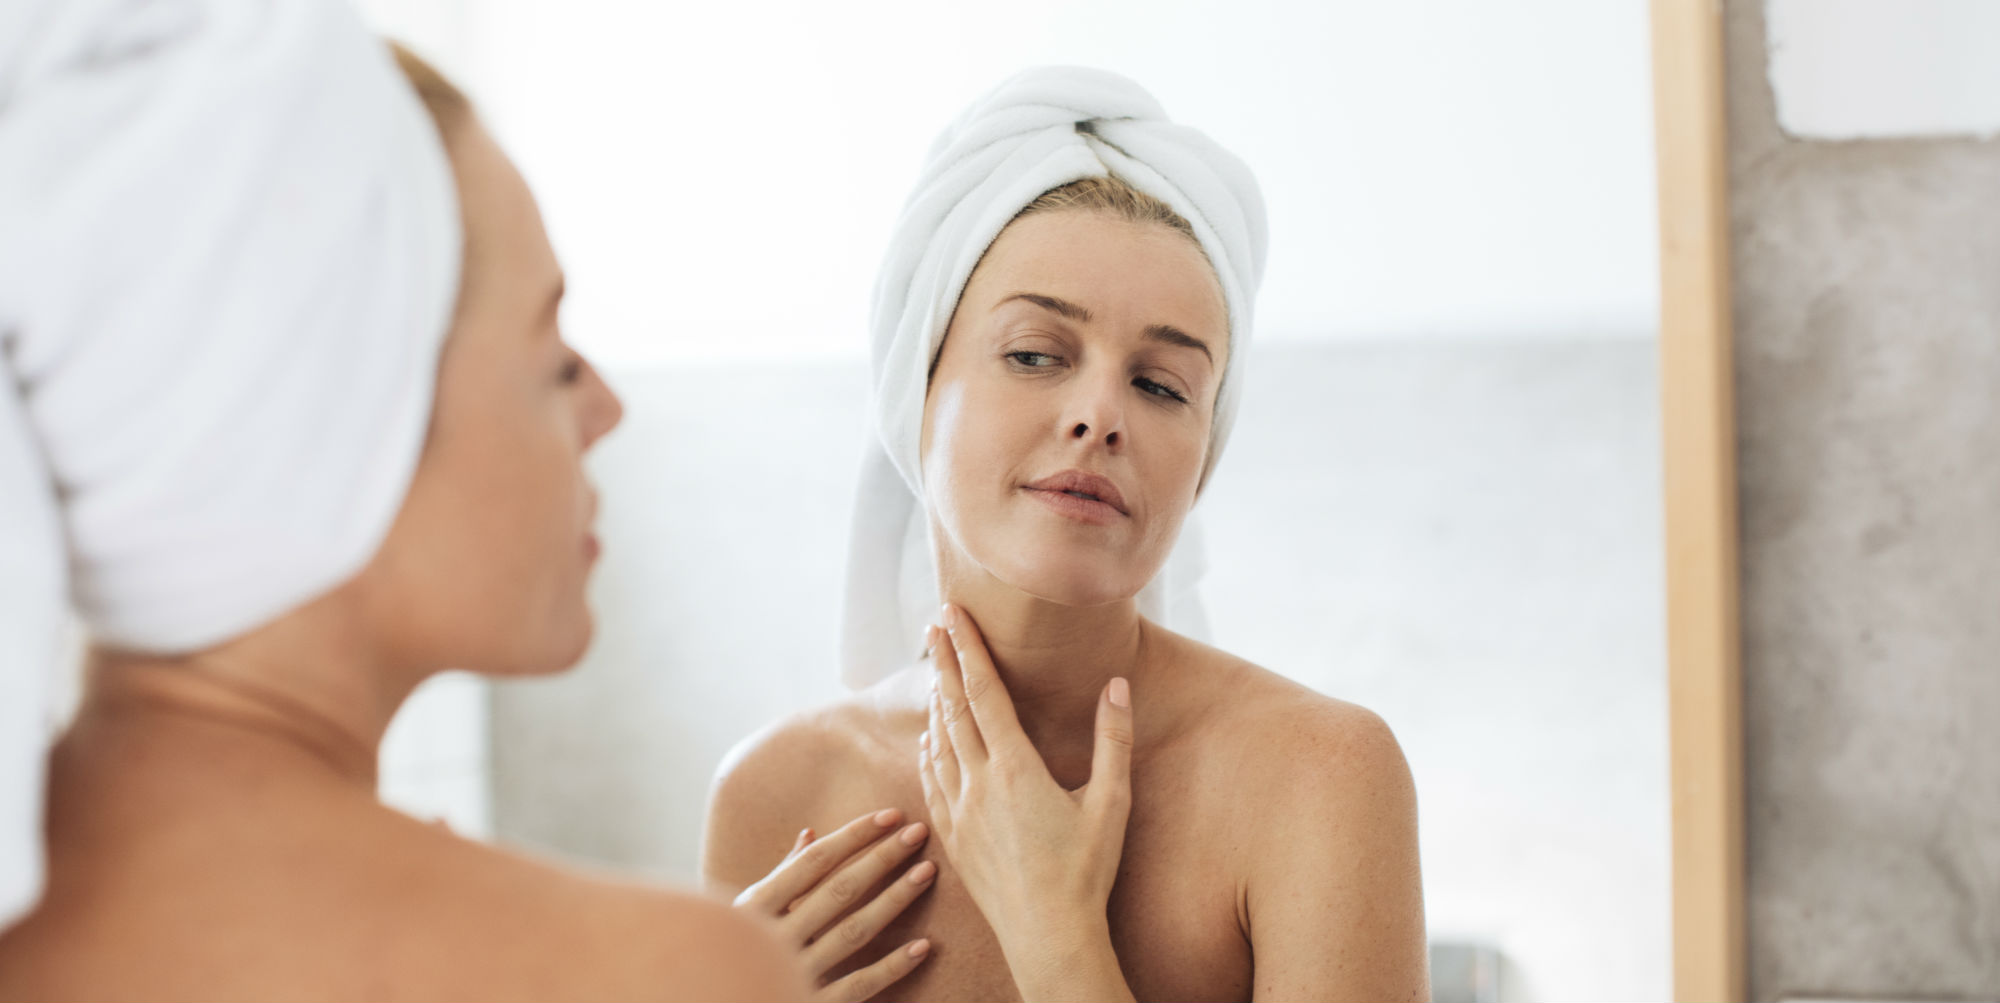 Want to Skip Needles & Surgery? Try These 3 Non-Invasive Skin Tightening Treatments